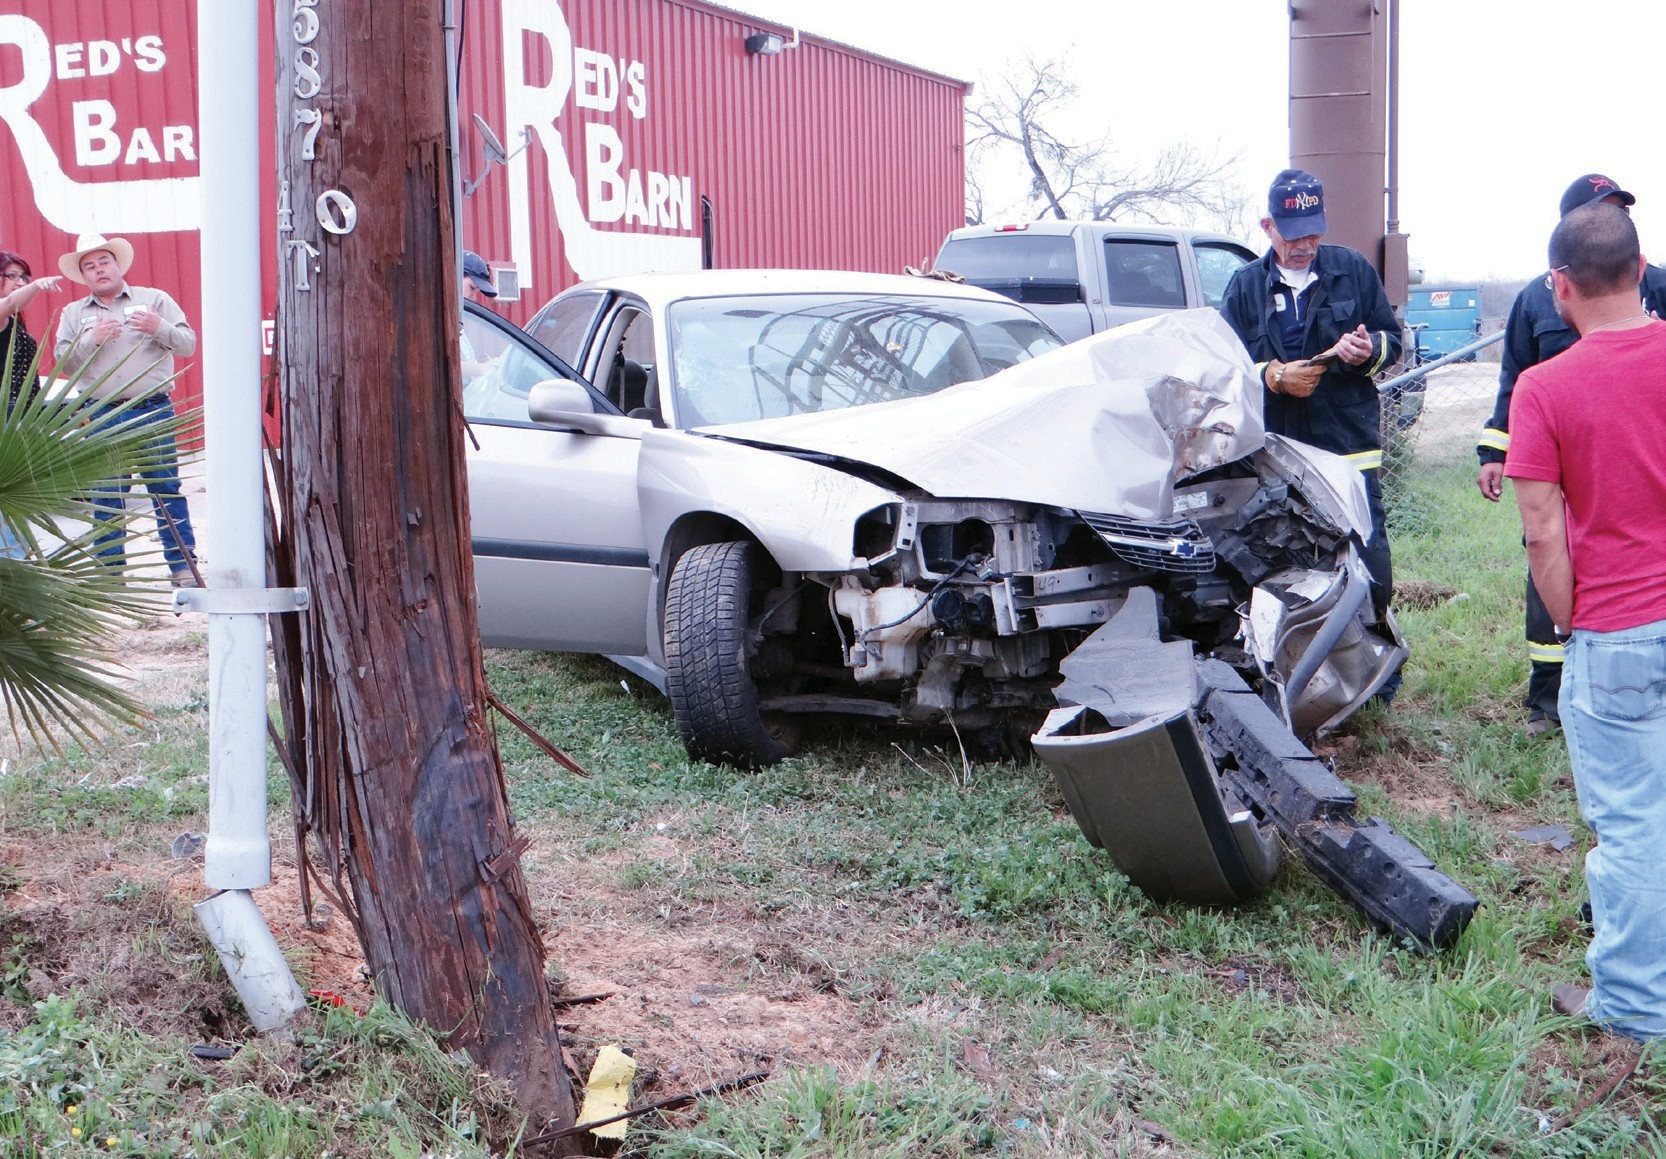 A driver heading on Hwy. 97E veered of the road and crashed his Ford Taurus into a light pole on 1100 block of West Oaklawn on Thursday, February 20. The driver was checked by EMS. No injuries were reported.